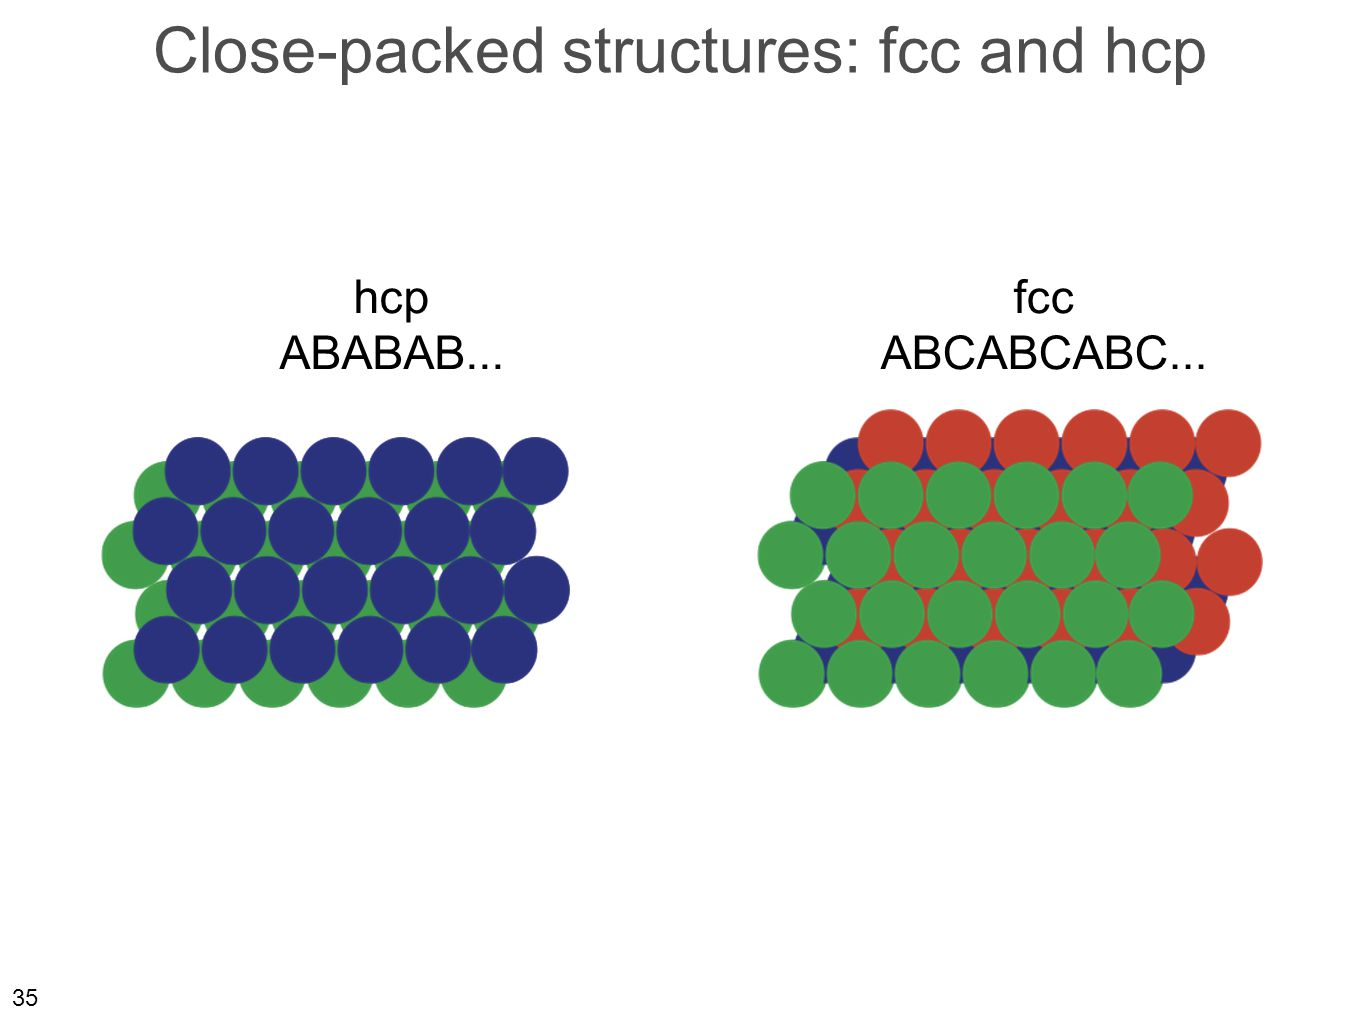 35 Close-packed structures: fcc and hcp hcp ABABAB... fcc ABCABCABC...